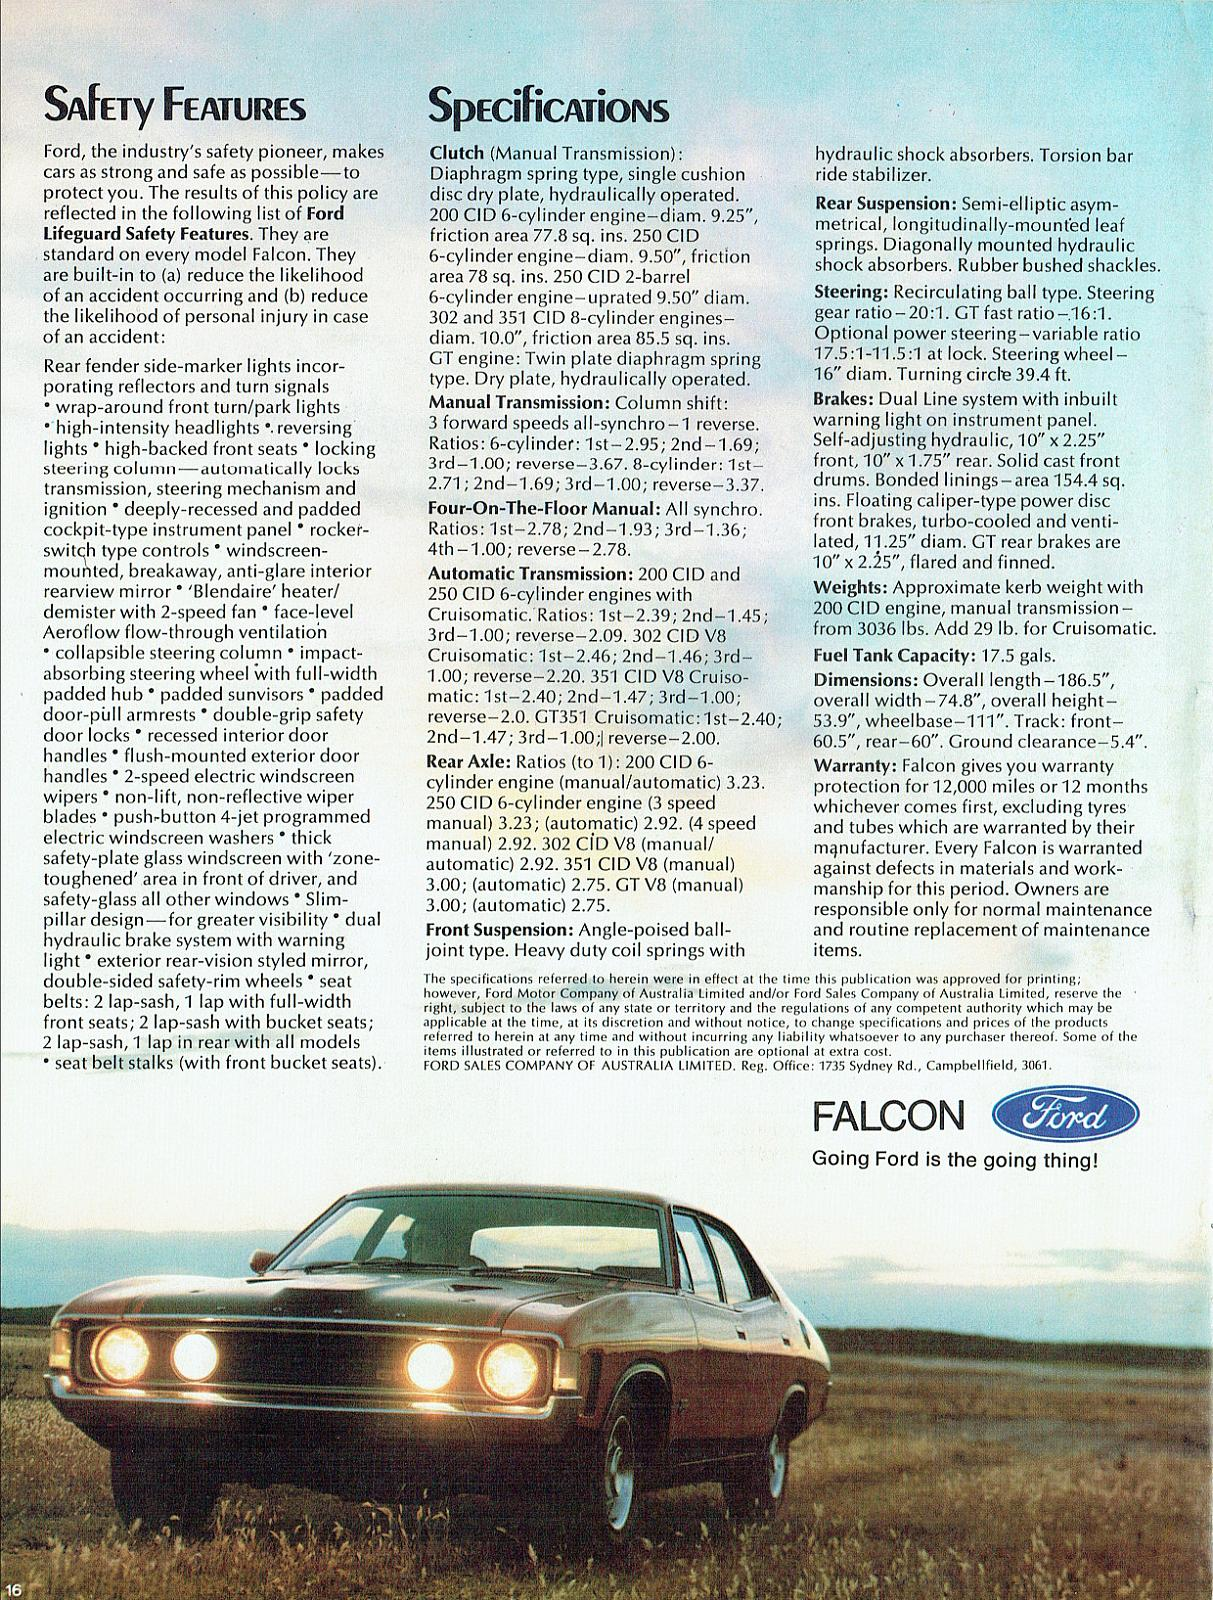 TunnelRam_1972 Ford XA Falcon Sedan-16.jpg